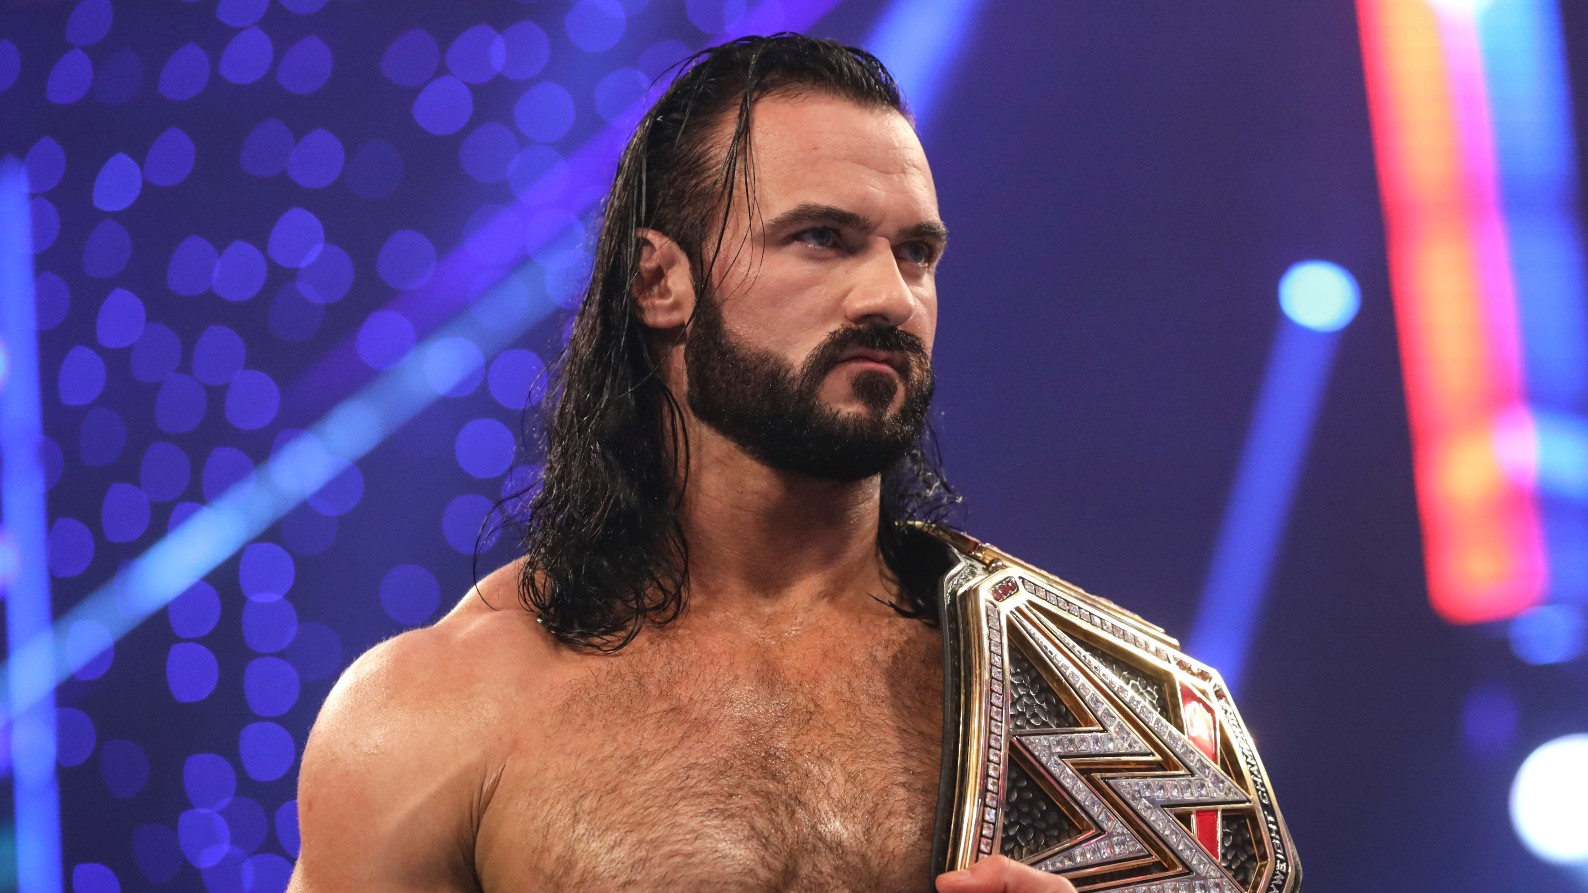 Drew McIntyre Biography, Facts & Life Story Updated 2021